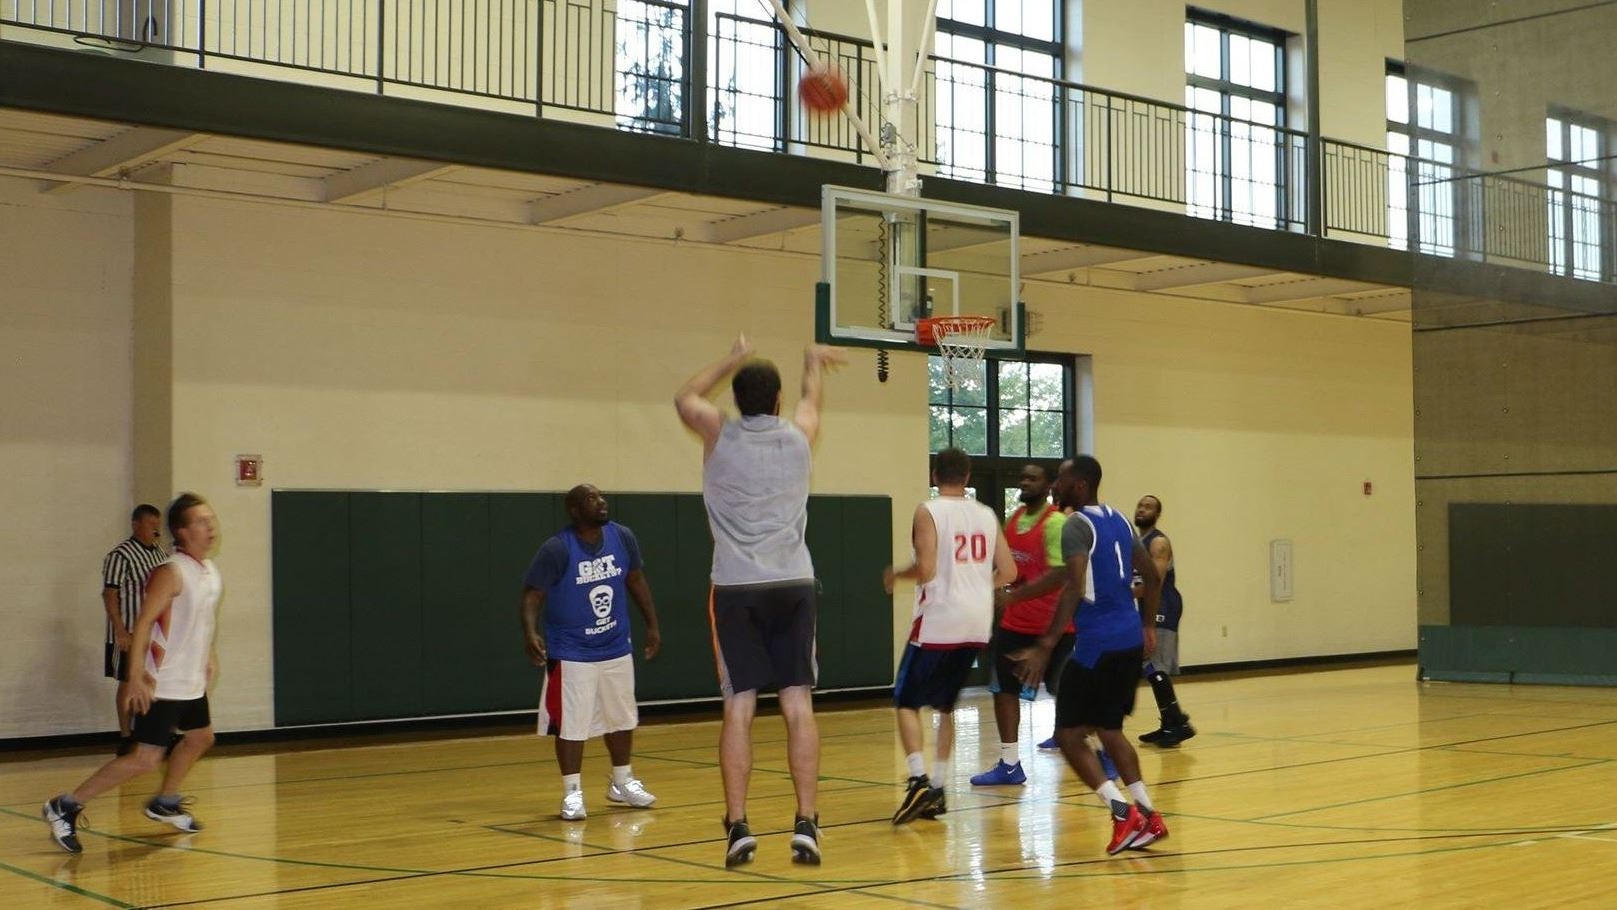 Basketball League (men's)